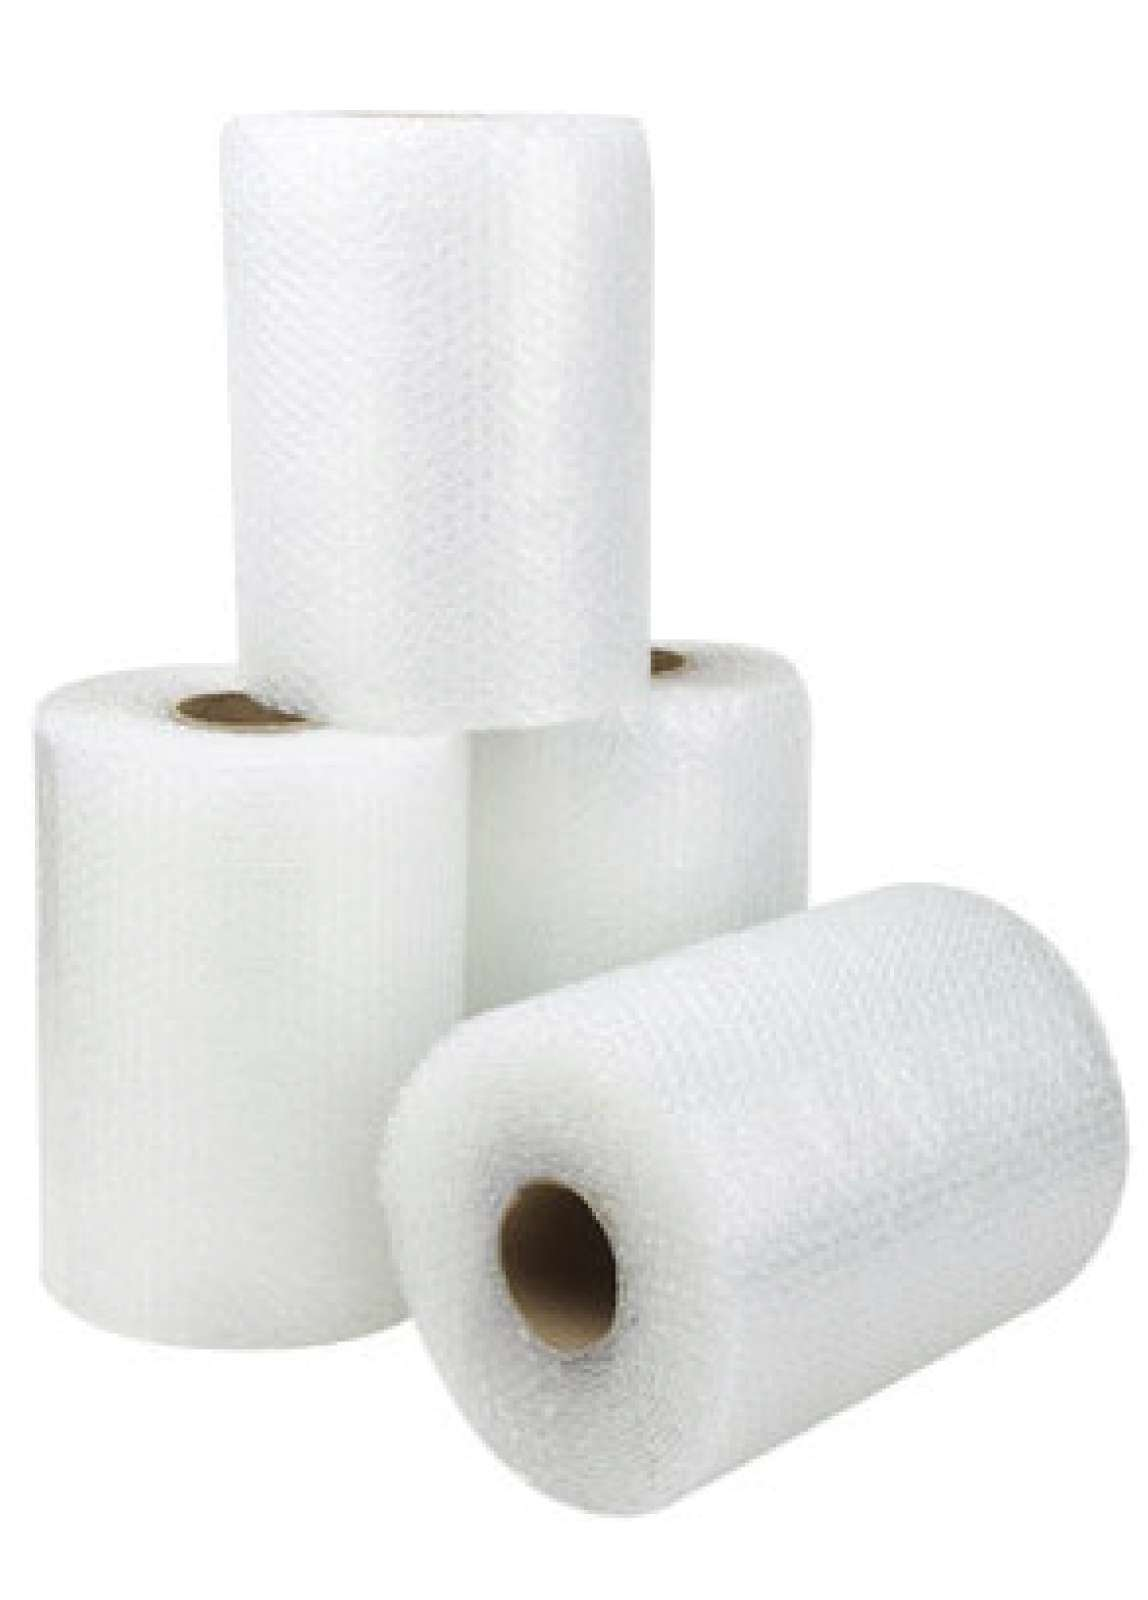 Bubble Wrap Rolls to help keep your products protected.